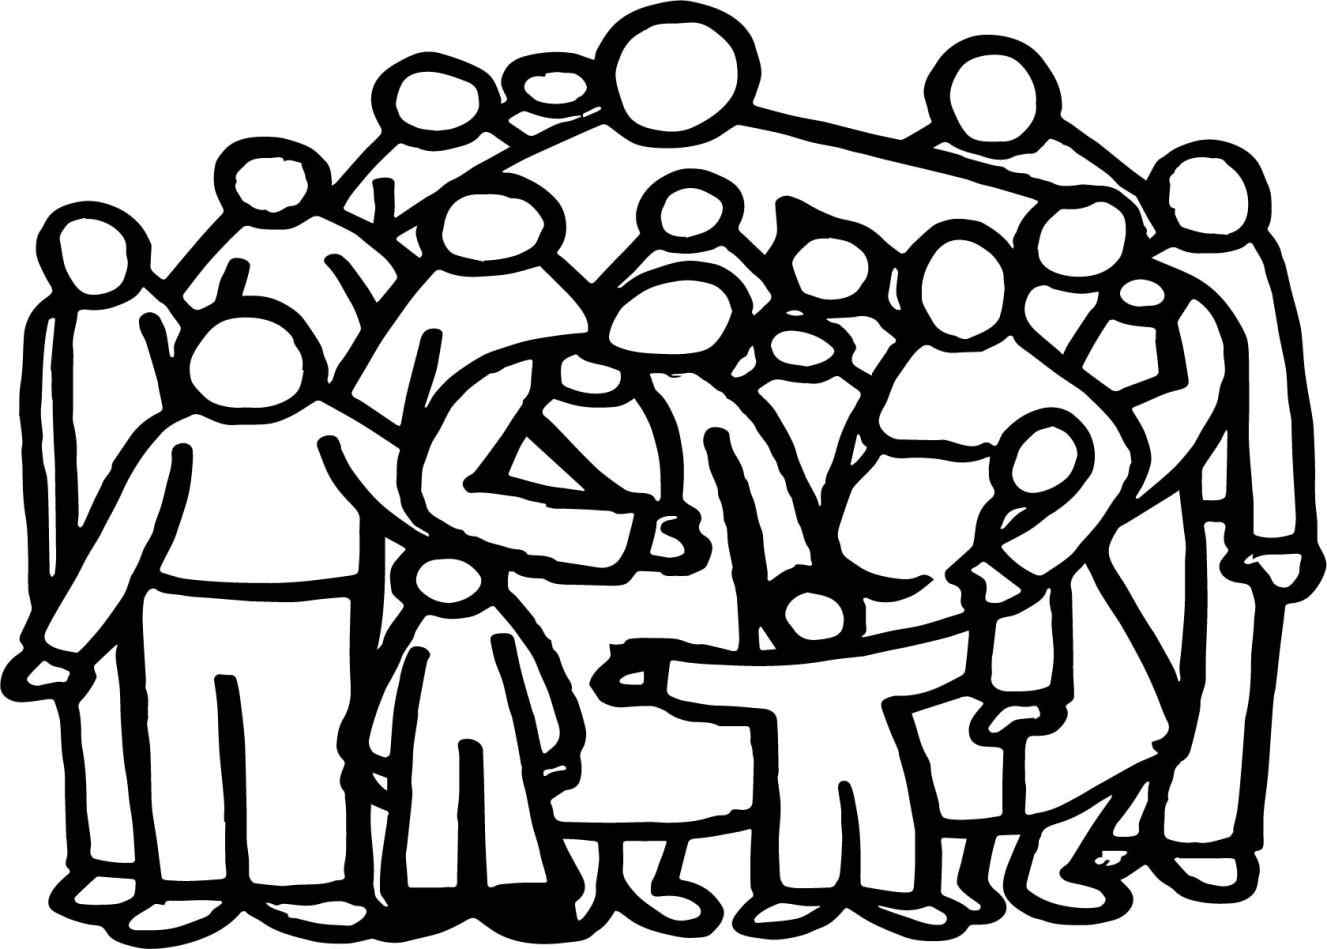 1327x949 Group Of People Coloring Pages Online Coloring Printable